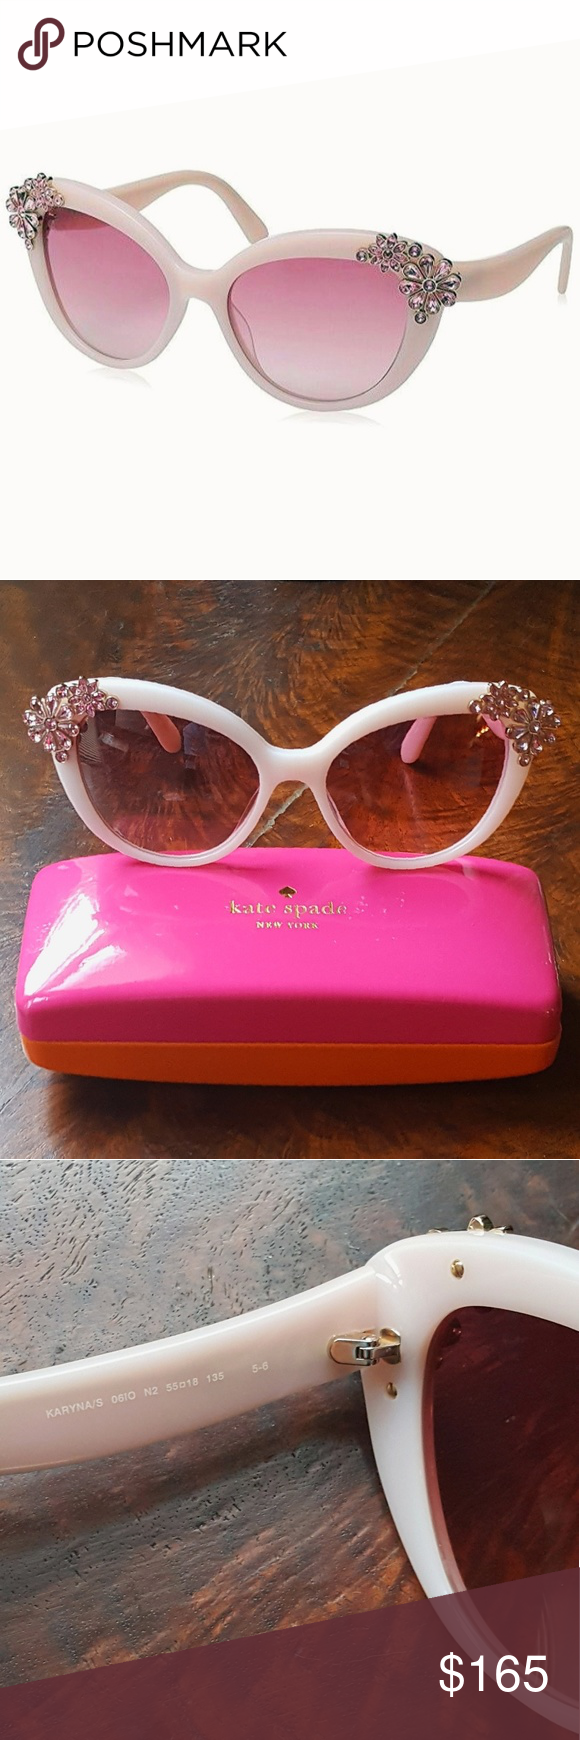 9c52111a1ee Kate spade pink crystal cat eye sunglasses kate spade karyna sunglasses  floral png 580x1740 Kate spade